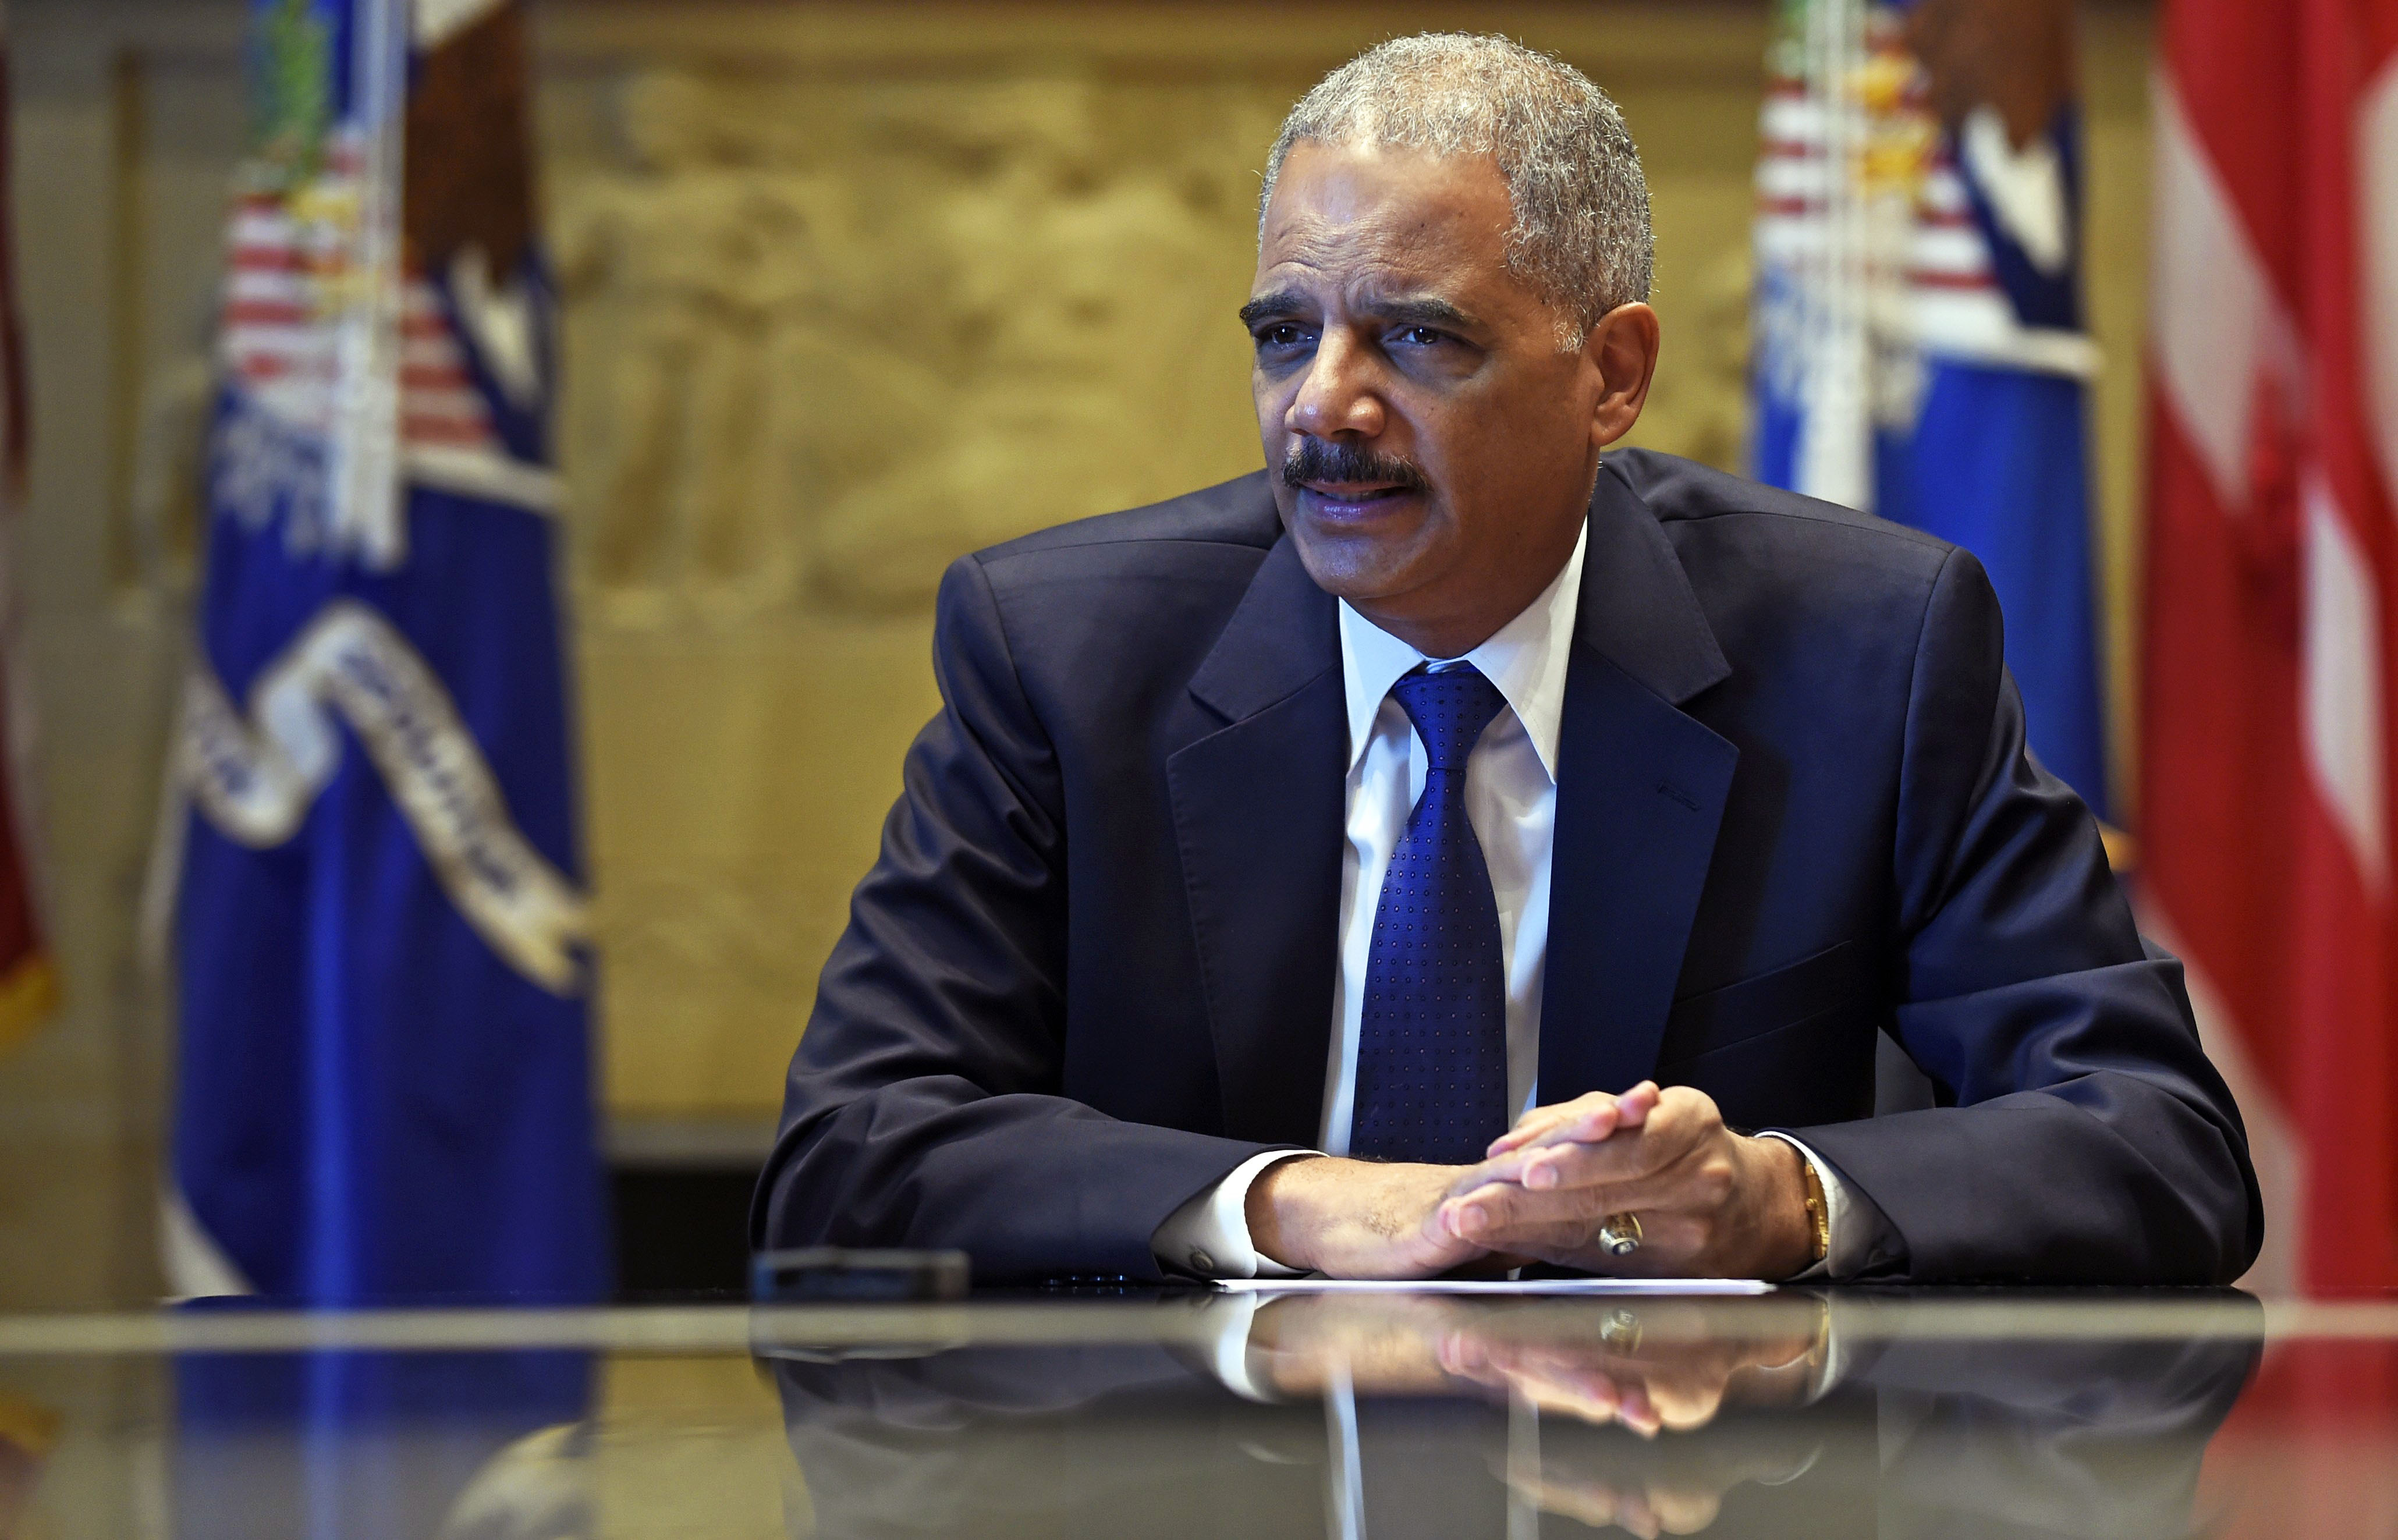 Attorney General Eric Holder speaks during an interview with The Associated Press at the Justice Department in Washington, on Sept. 16, 2014.